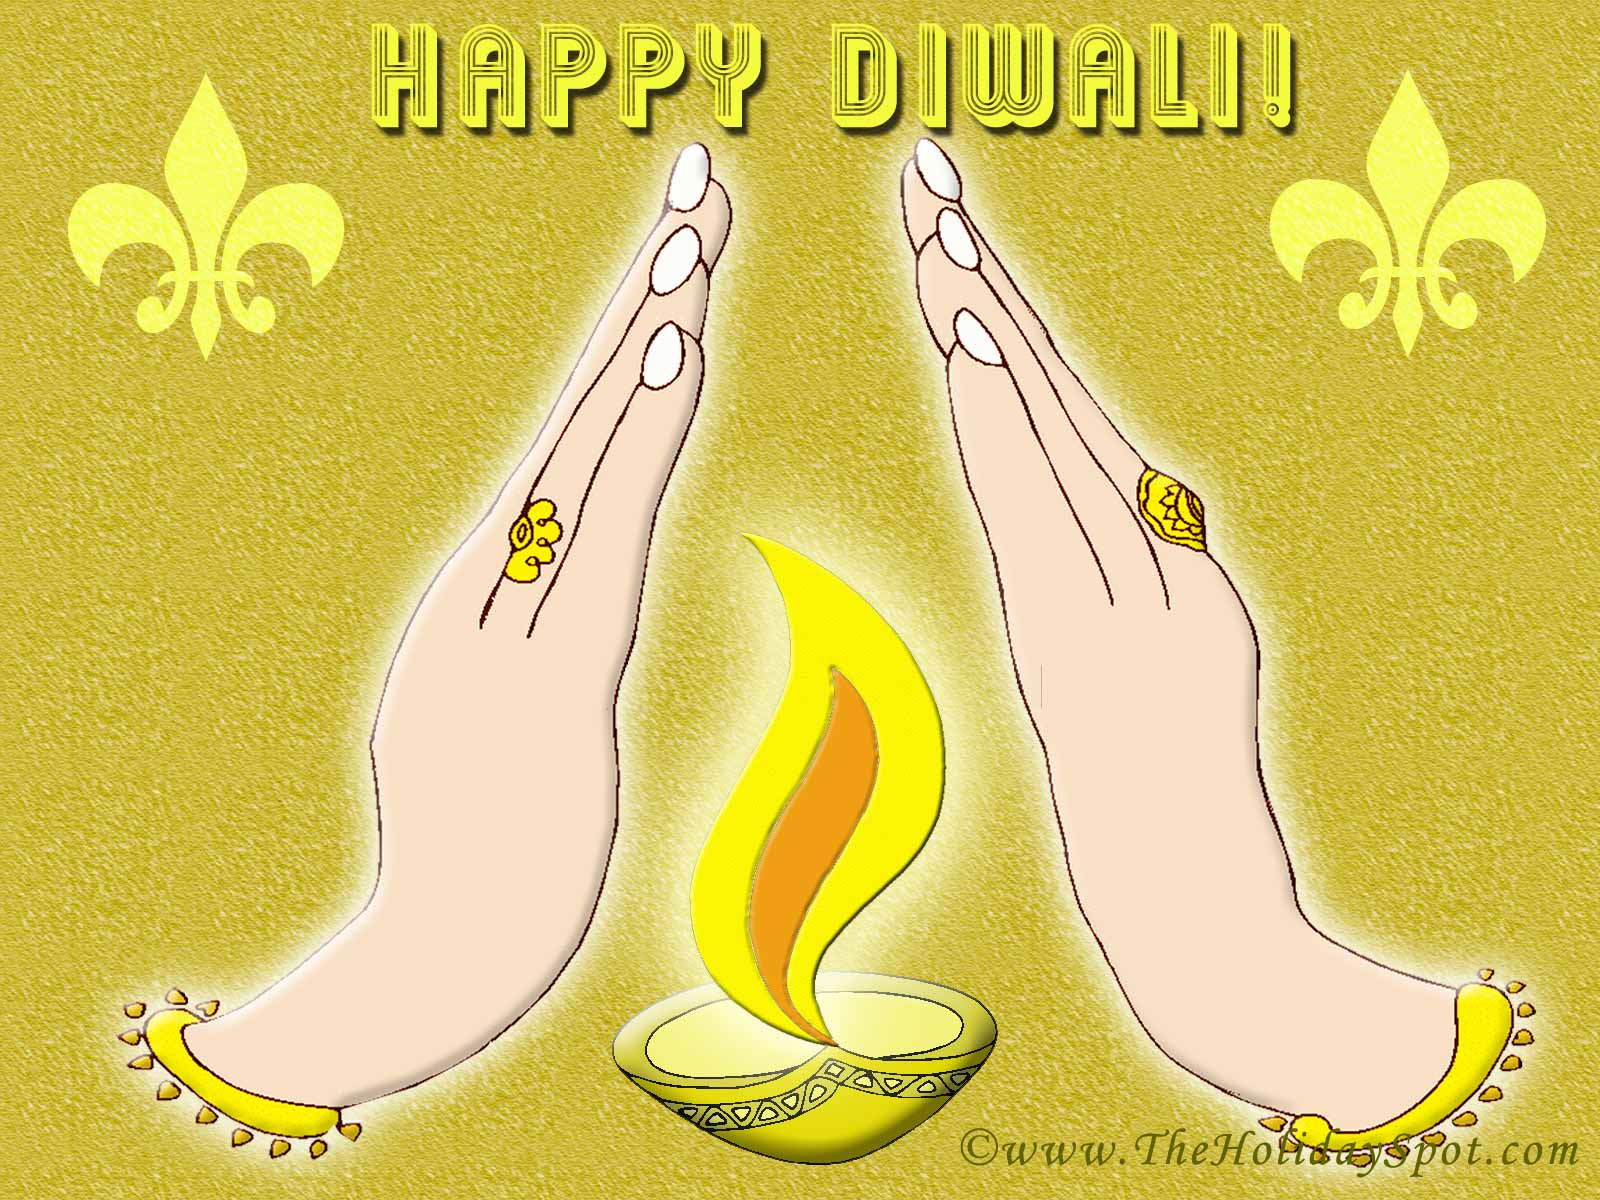 45 Colorful Diwali Wallpapers | DesignsMag